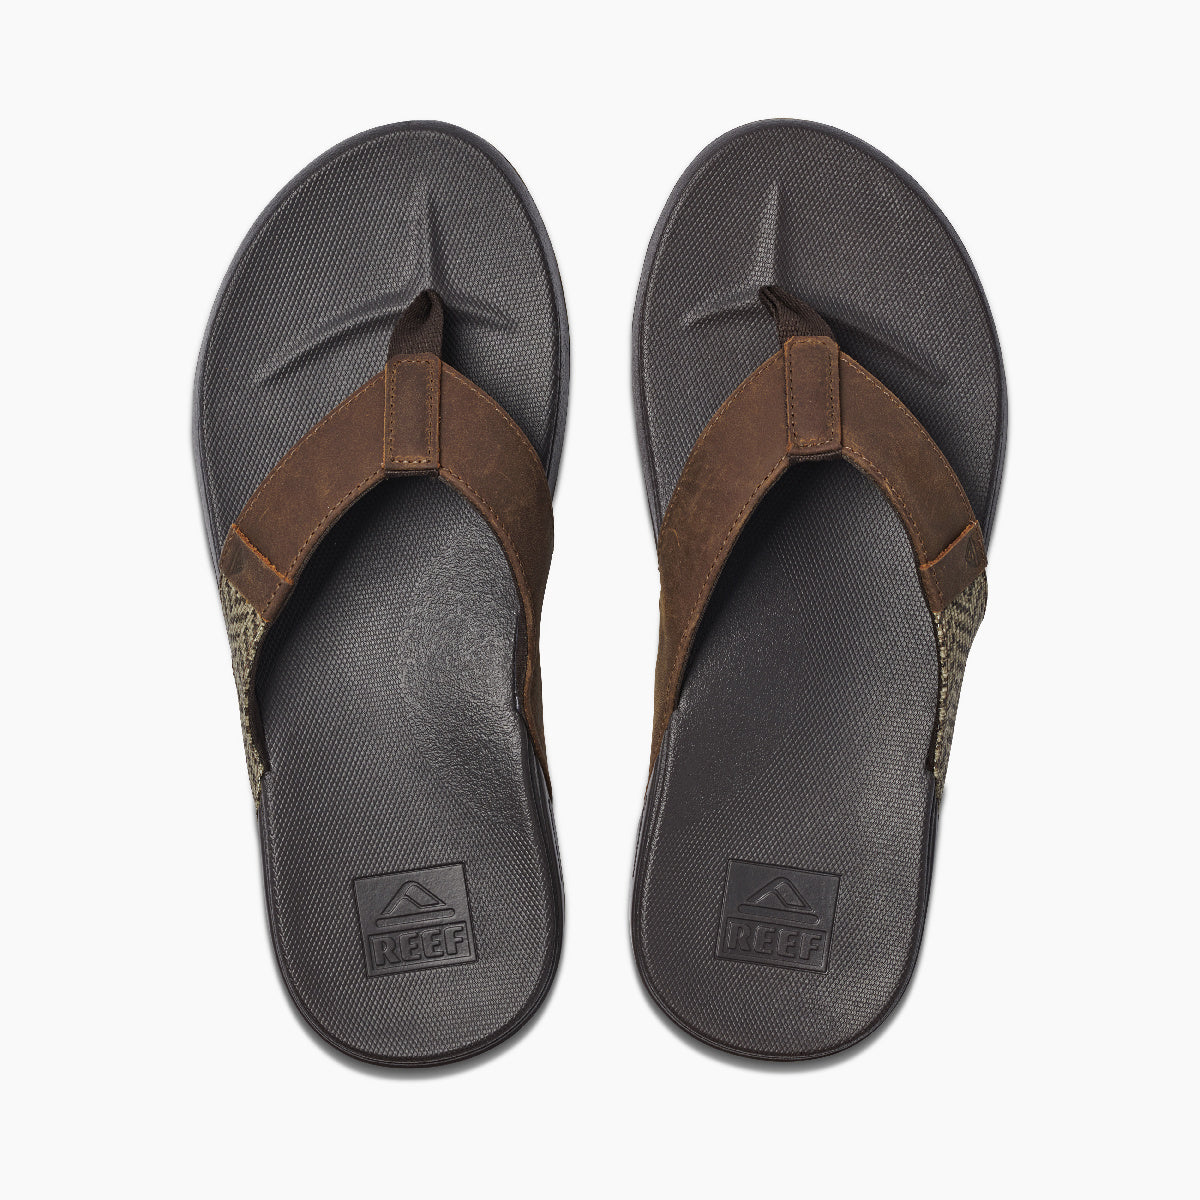 Reef Cushion Bounce Phantom SE Sandals - 88 Gear